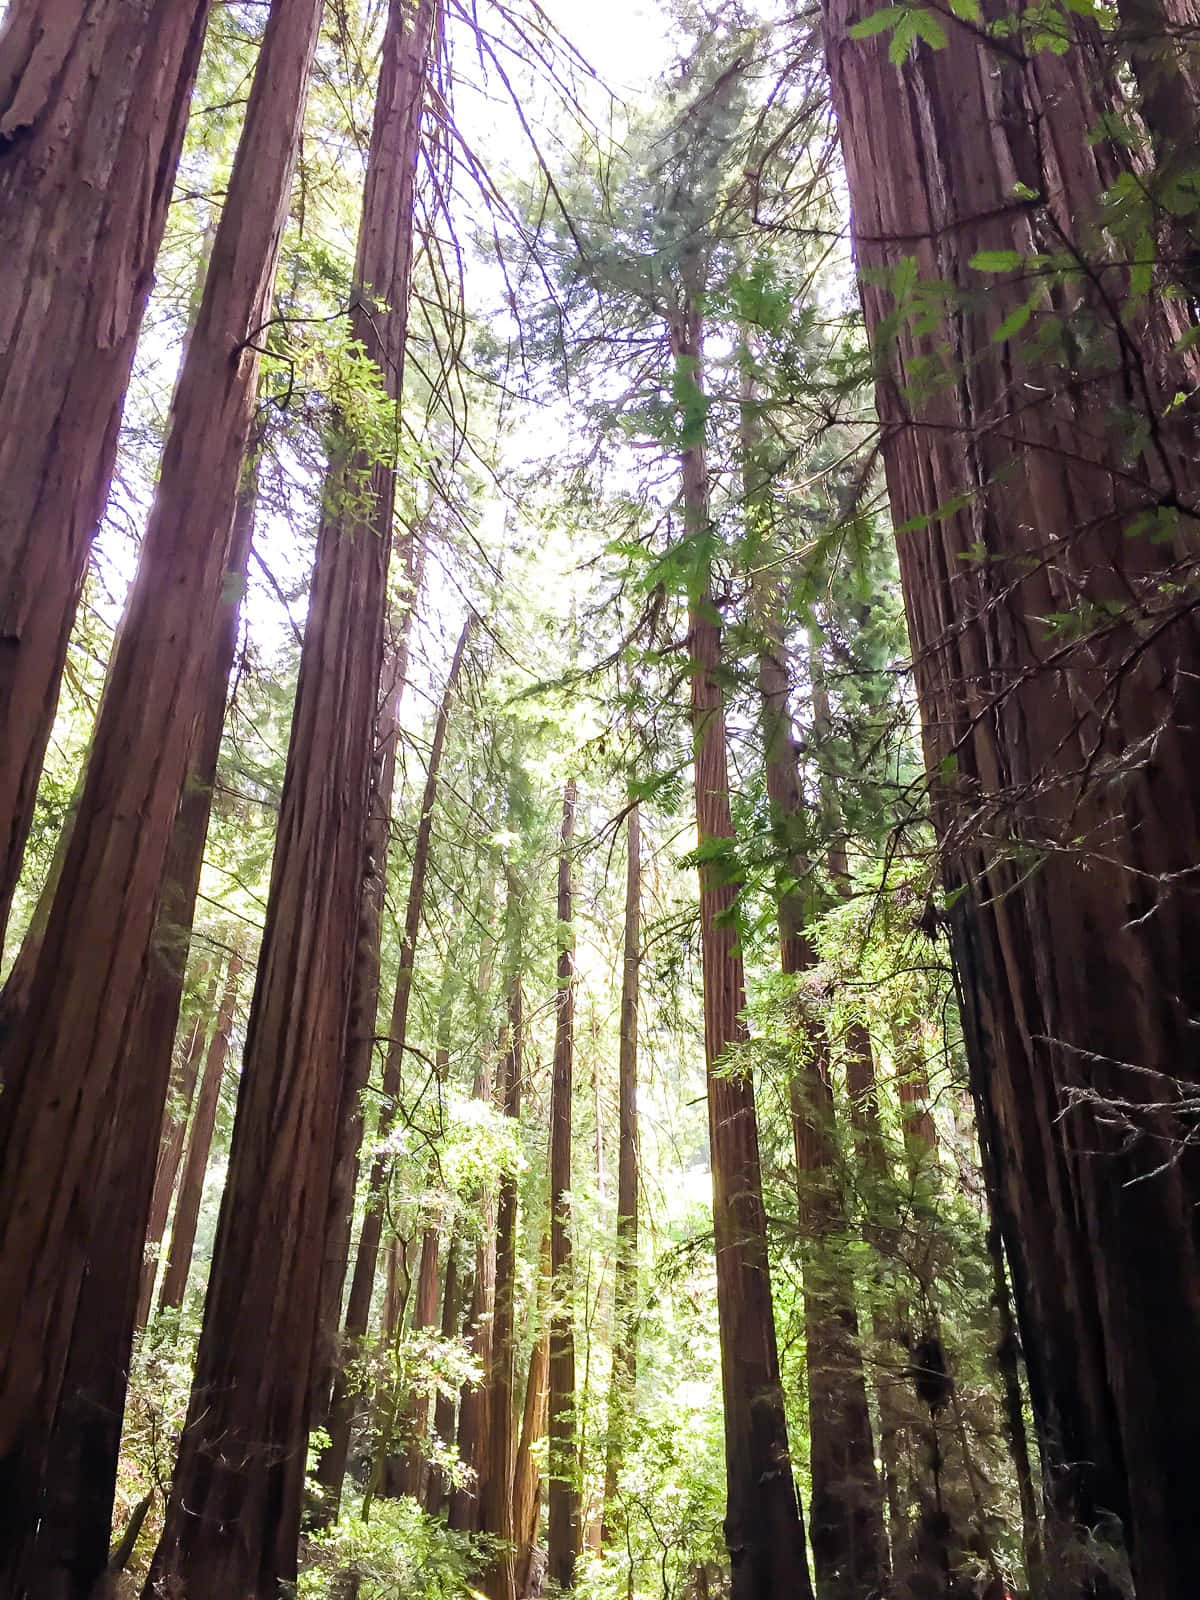 What to do in San Francisco: Visit Muir Woods